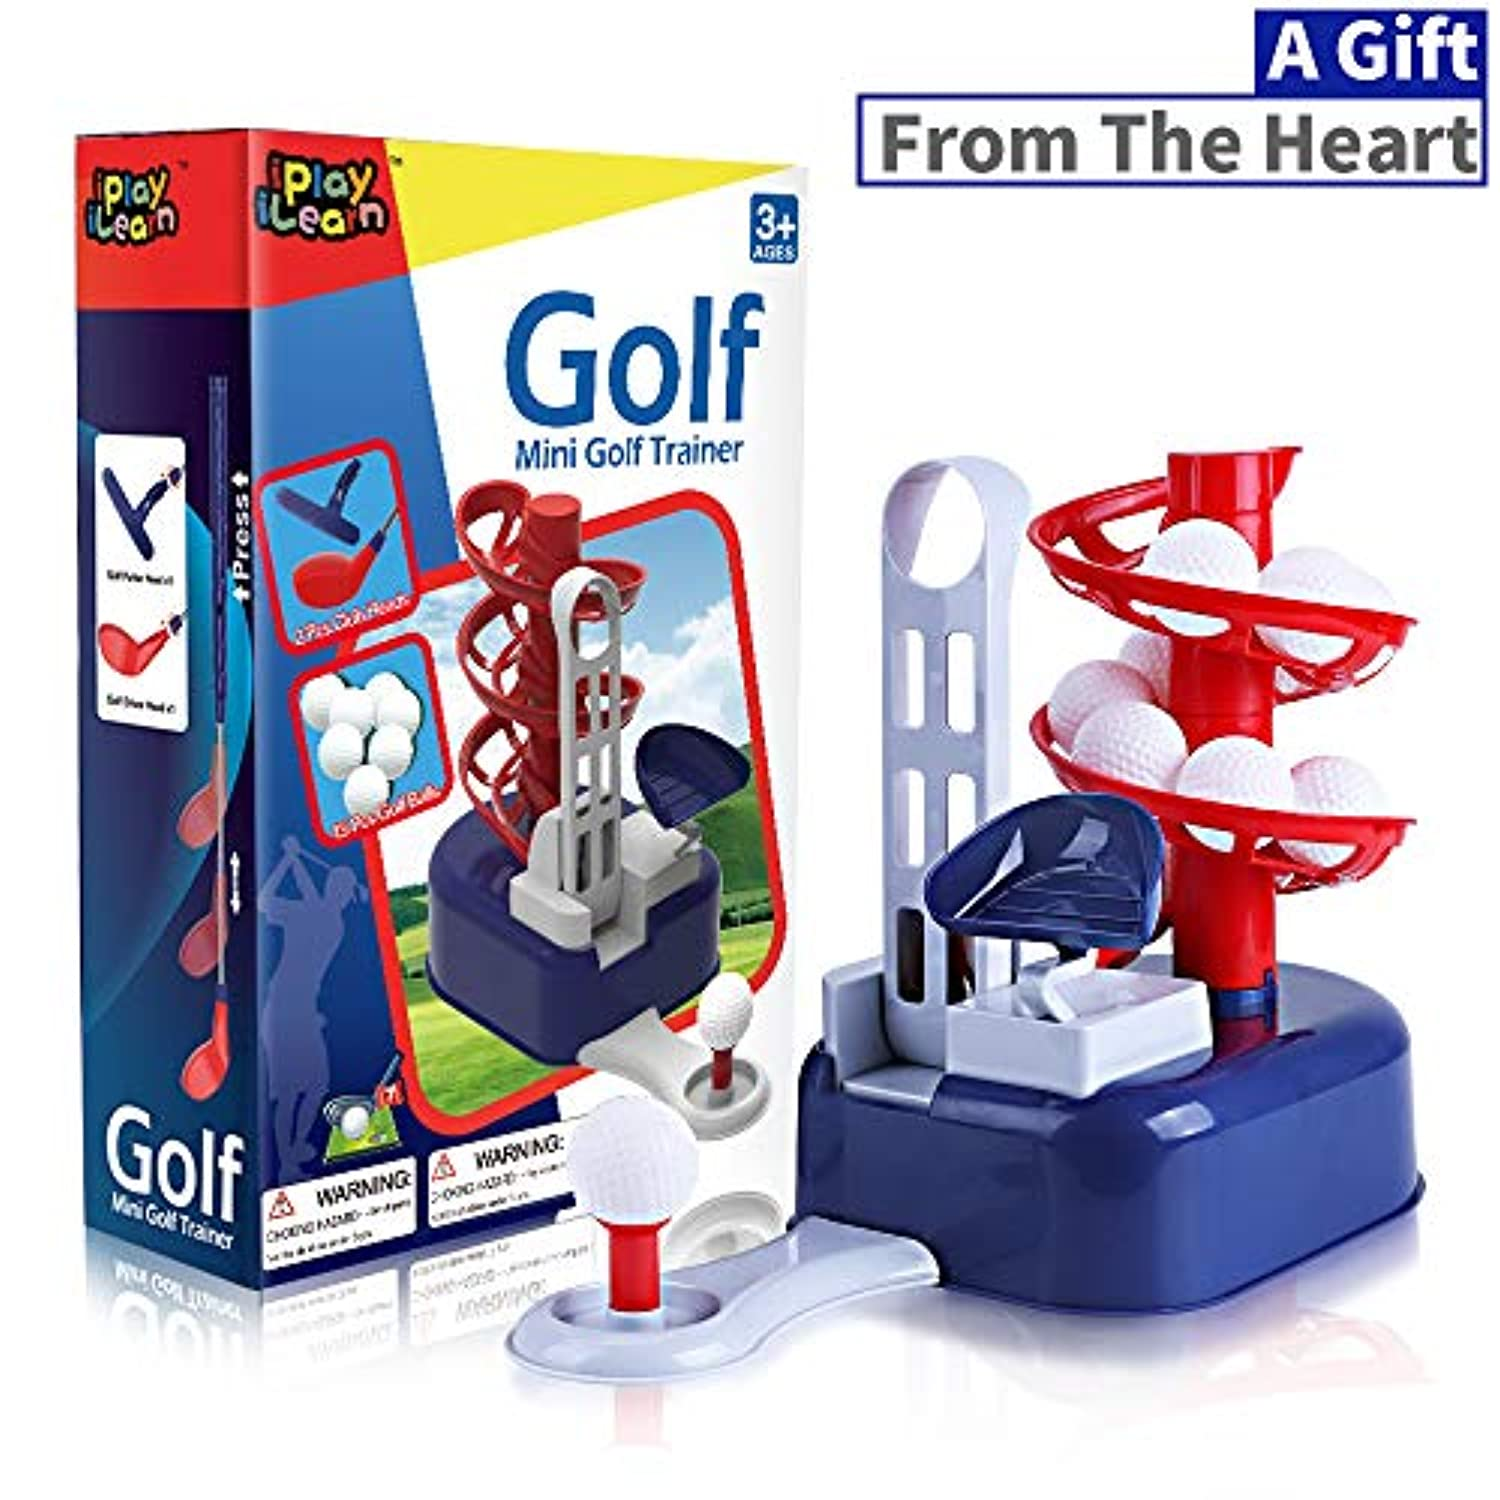 Classier: Buy iPlay, iLearn iPlay, iLearn Kids Golf Toys Set, Outdoor Lawn Sport Toy, Training Golf Balls & Clubs Equipment, Indoor Exercise, Outside Yard Active Gifts for 3 4 5 6 7 8 Year Olds Boys Toddlers Children Girls